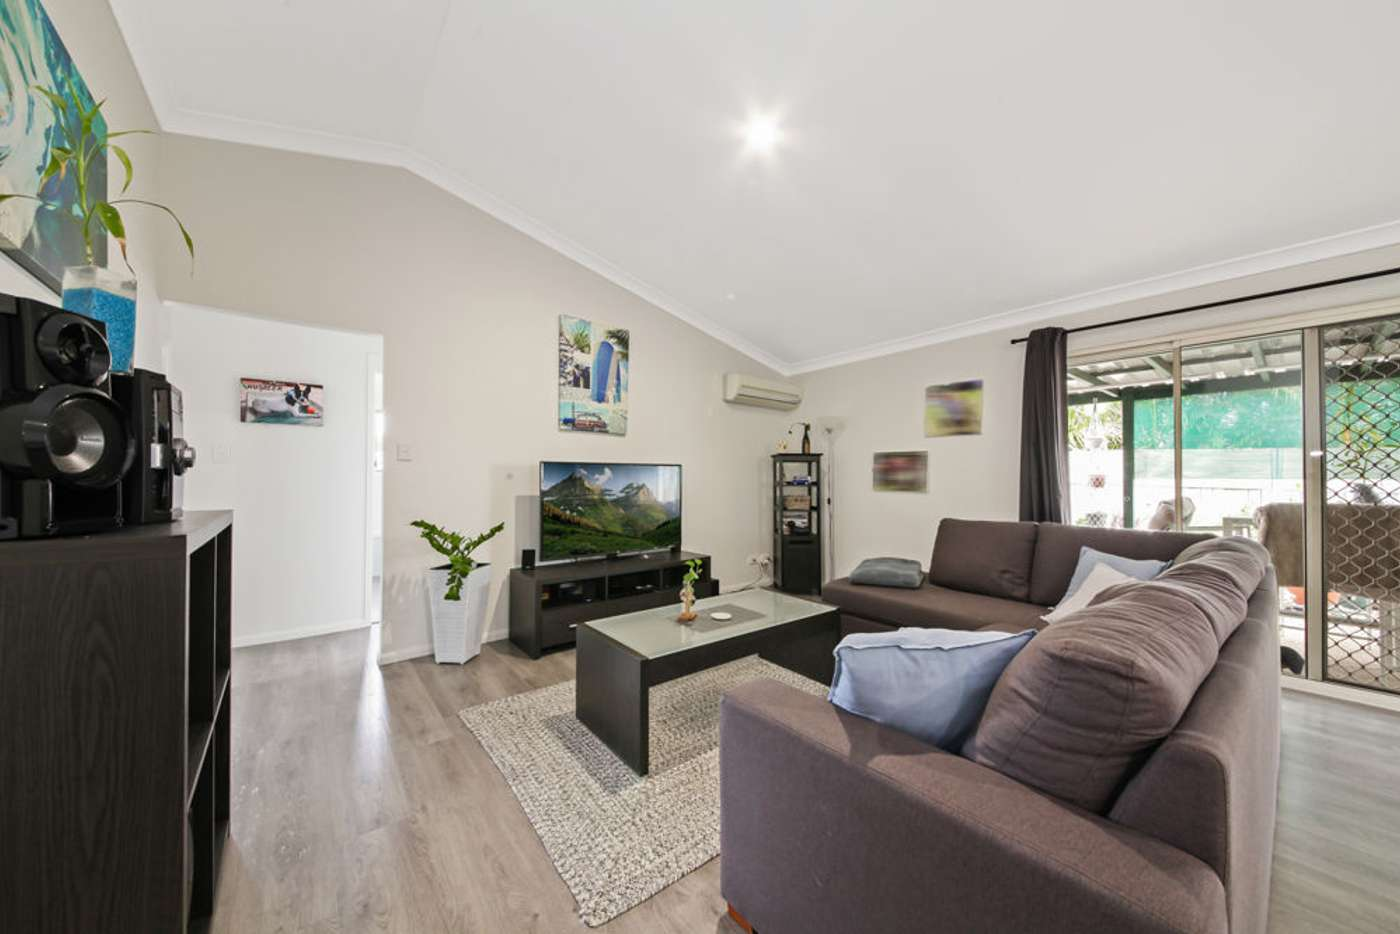 Main view of Homely house listing, 2 Cinear Court, Regents Park QLD 4118